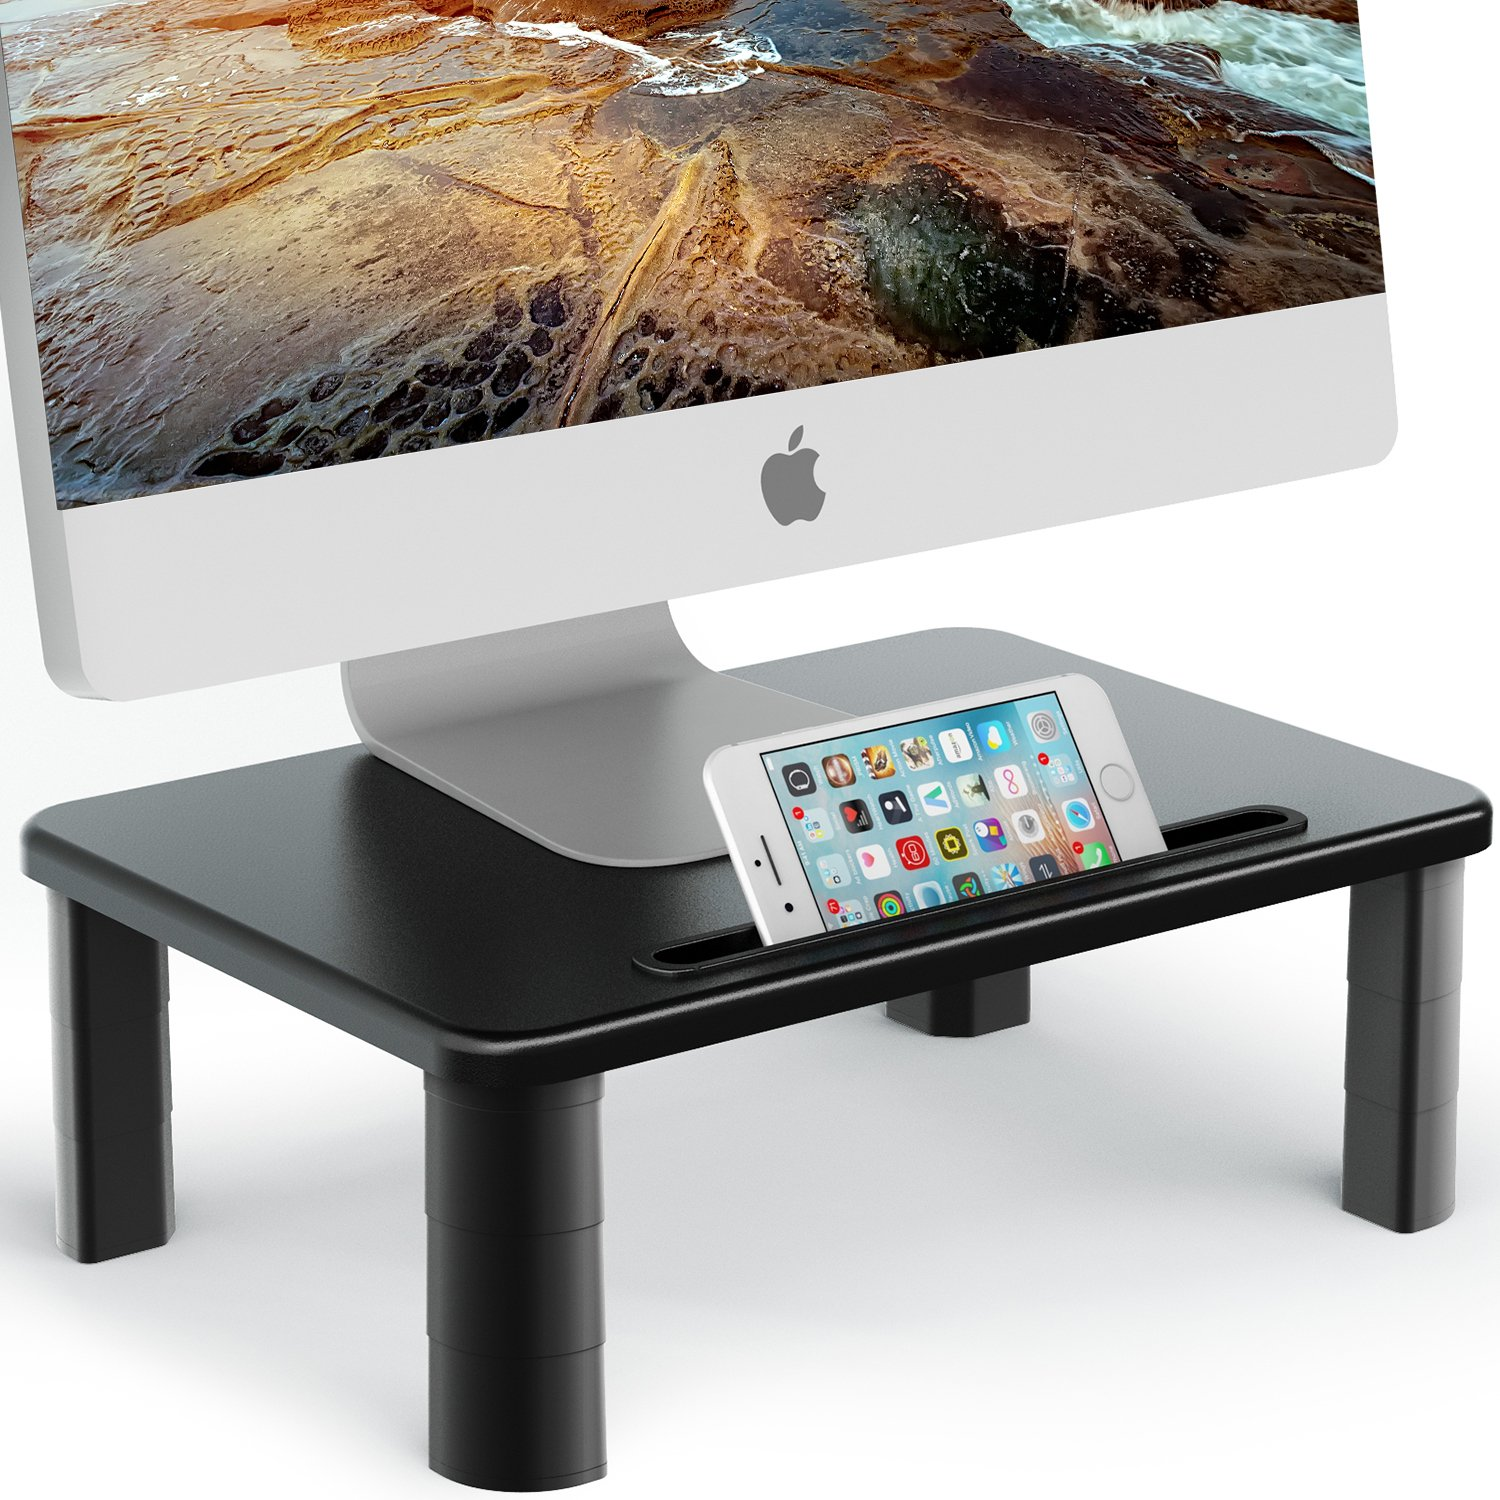 Adjustable Monitor Stand - EleTab Computer Riser Printer Stand Monitor Riser with Tablet & Phone Holder Desk Organizer by EleTab (Image #1)